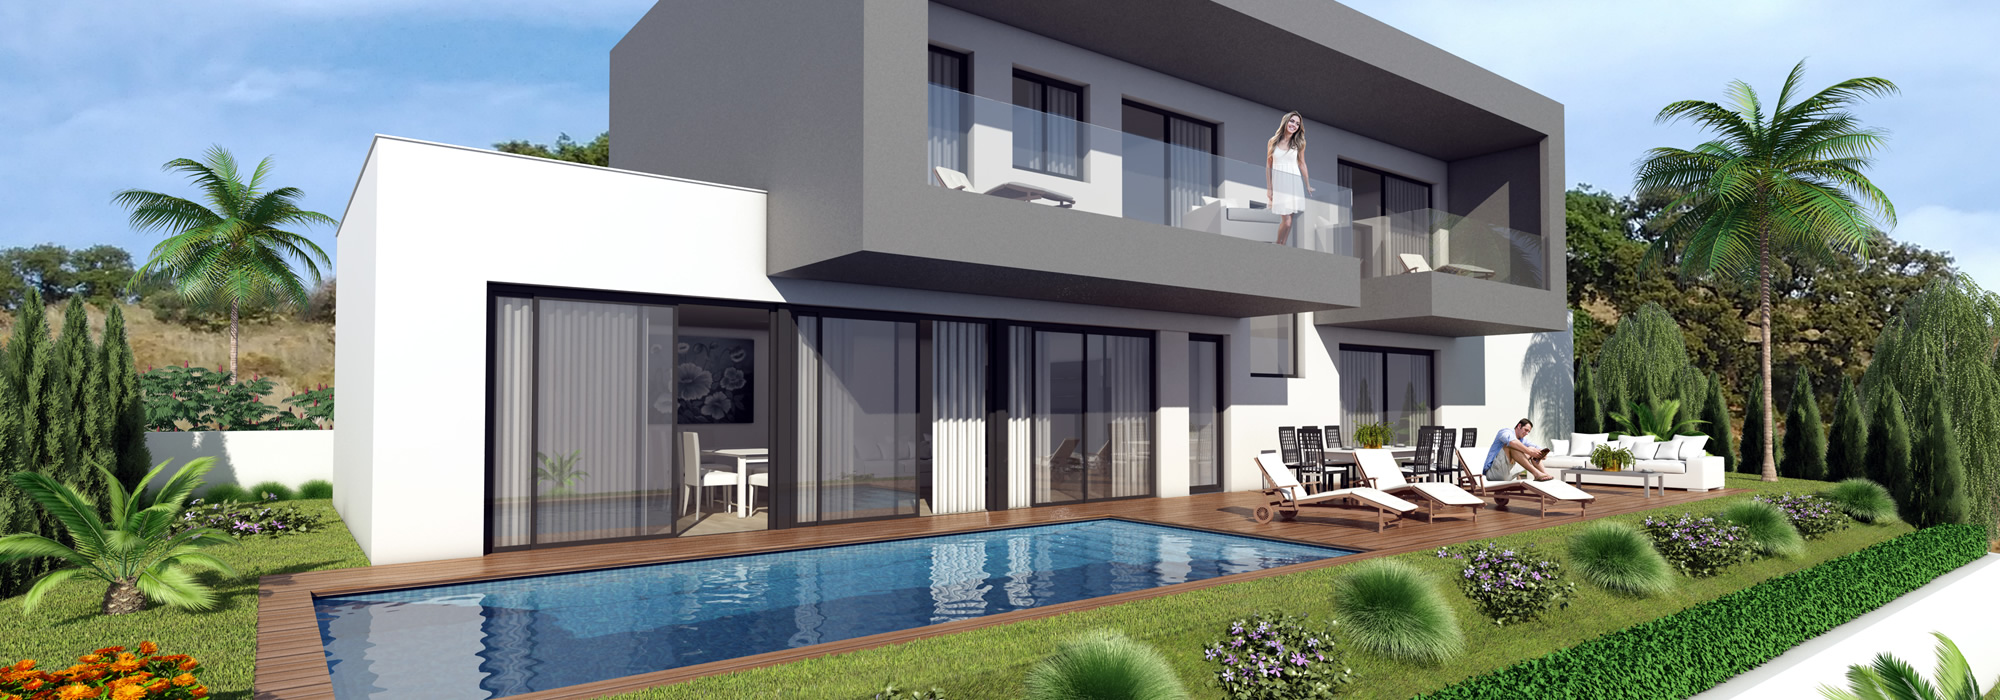 Modern Built Spanish Villas